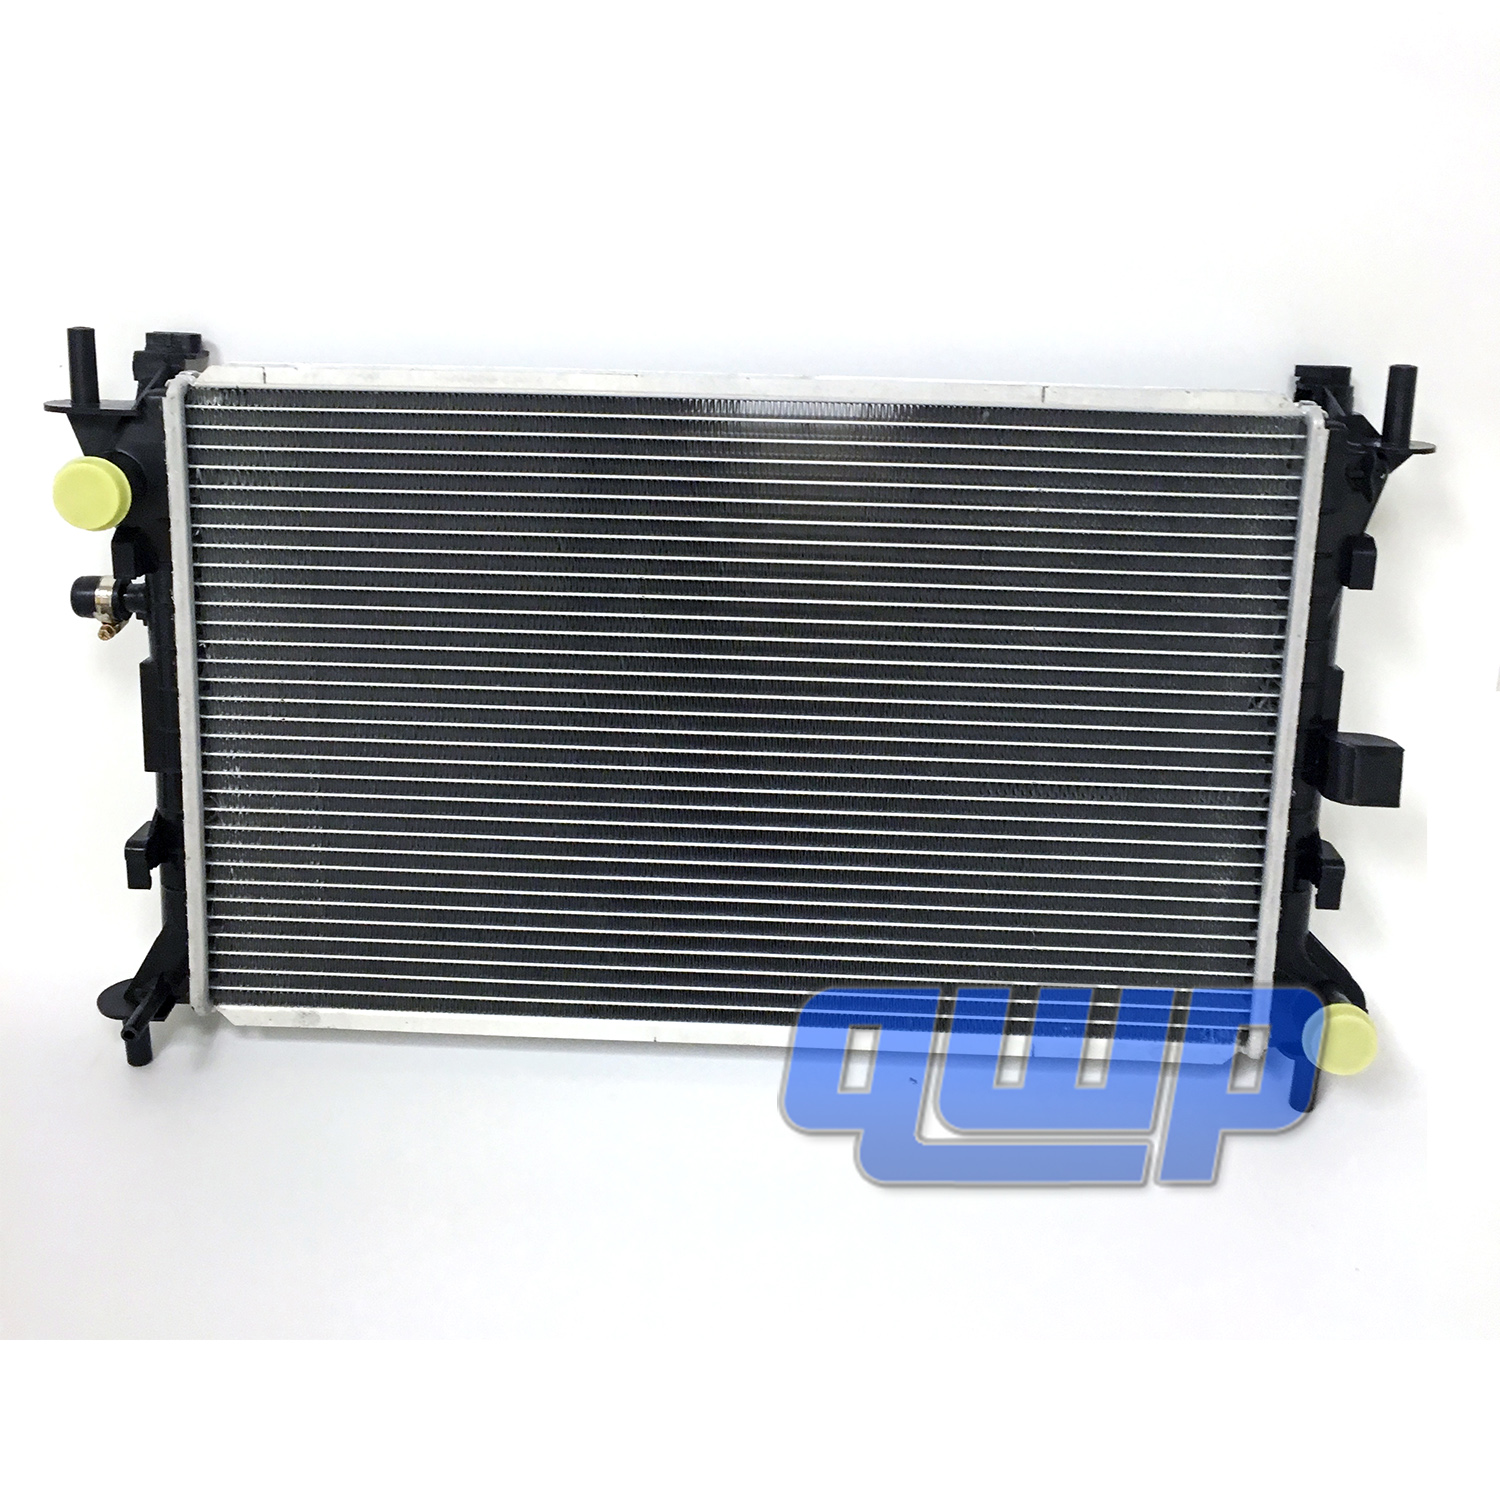 New Radiator Fits 2000- 2007 Manual Transmission Ford Focus 2.0L YS4Z8005AA